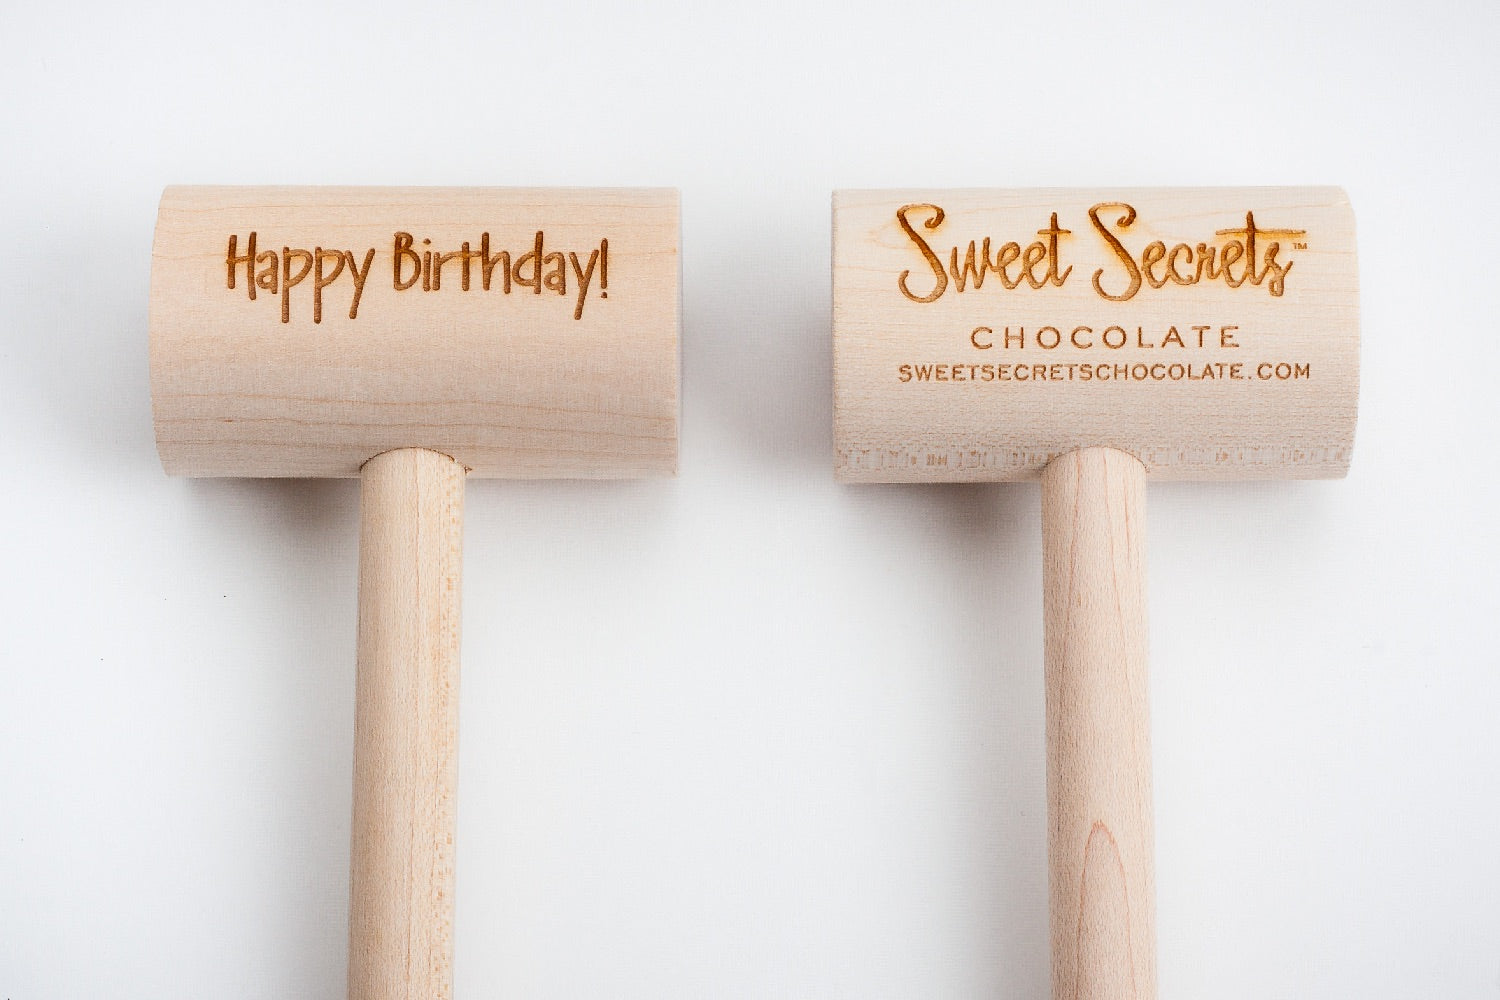 Happy Birthday Smash Mallet-Sweet Secrets Chocolate